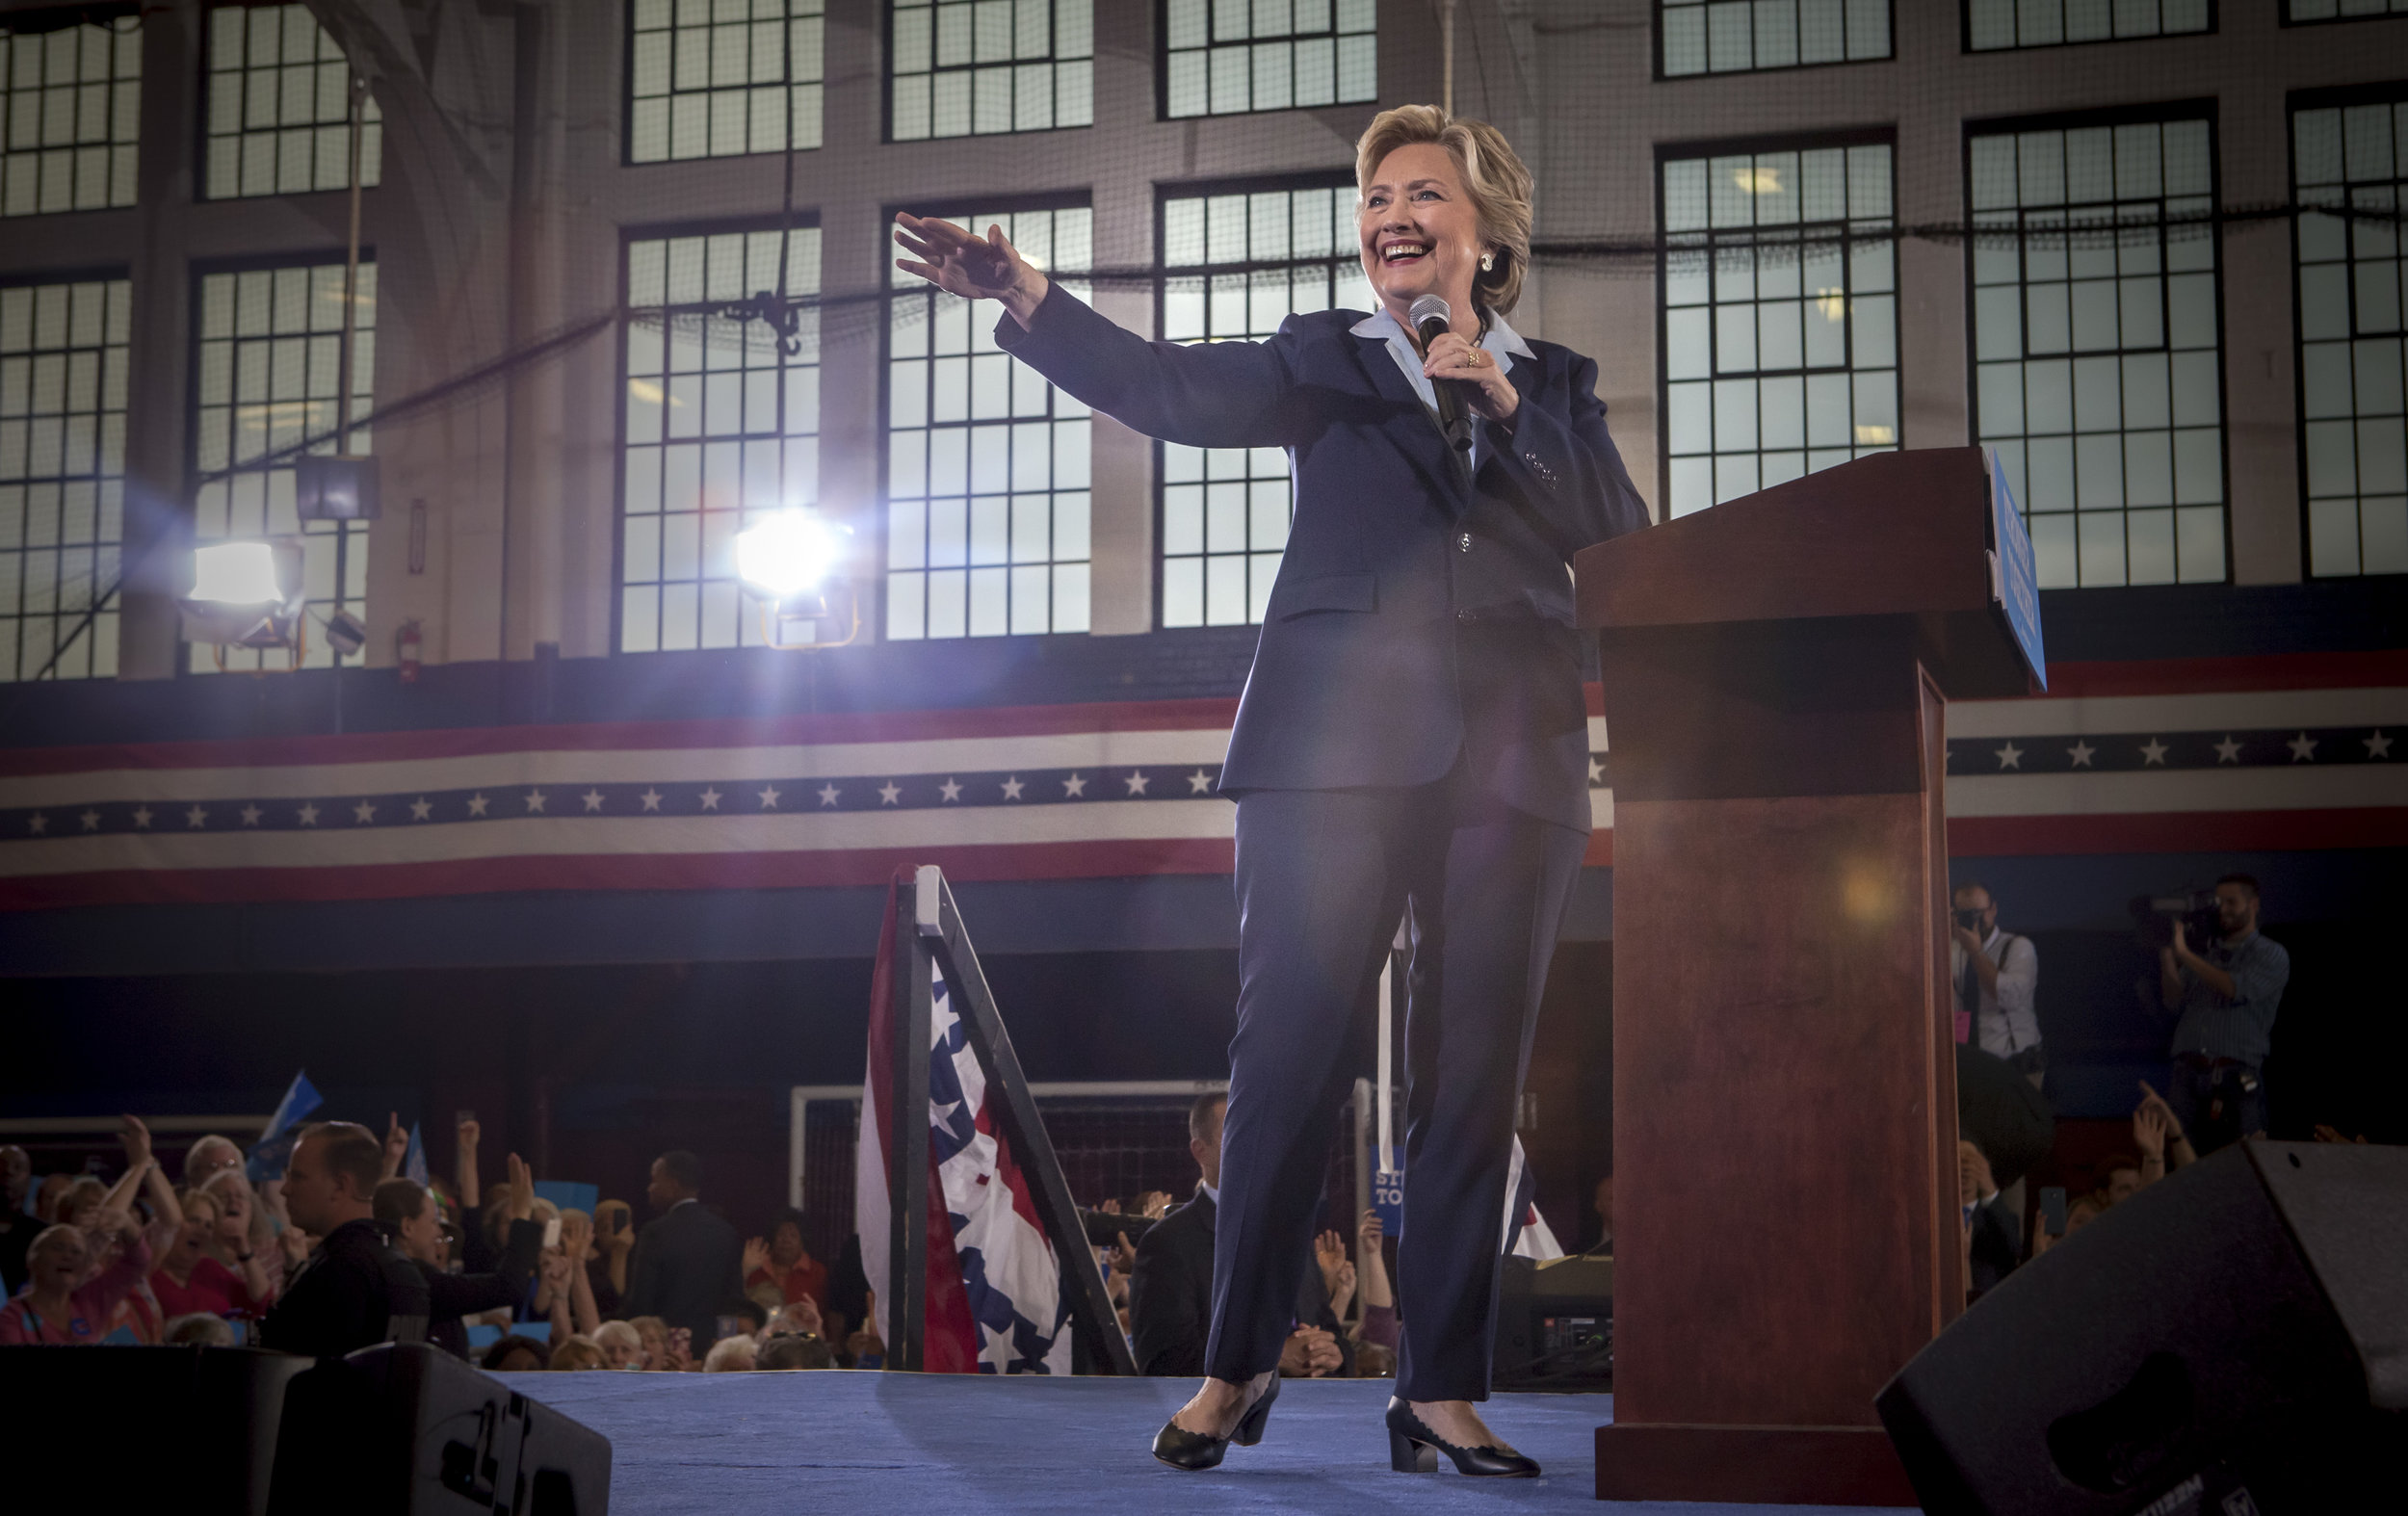 10032016_BJM_Hillary_Campaigns_in_Akron_Ohio_52.jpg